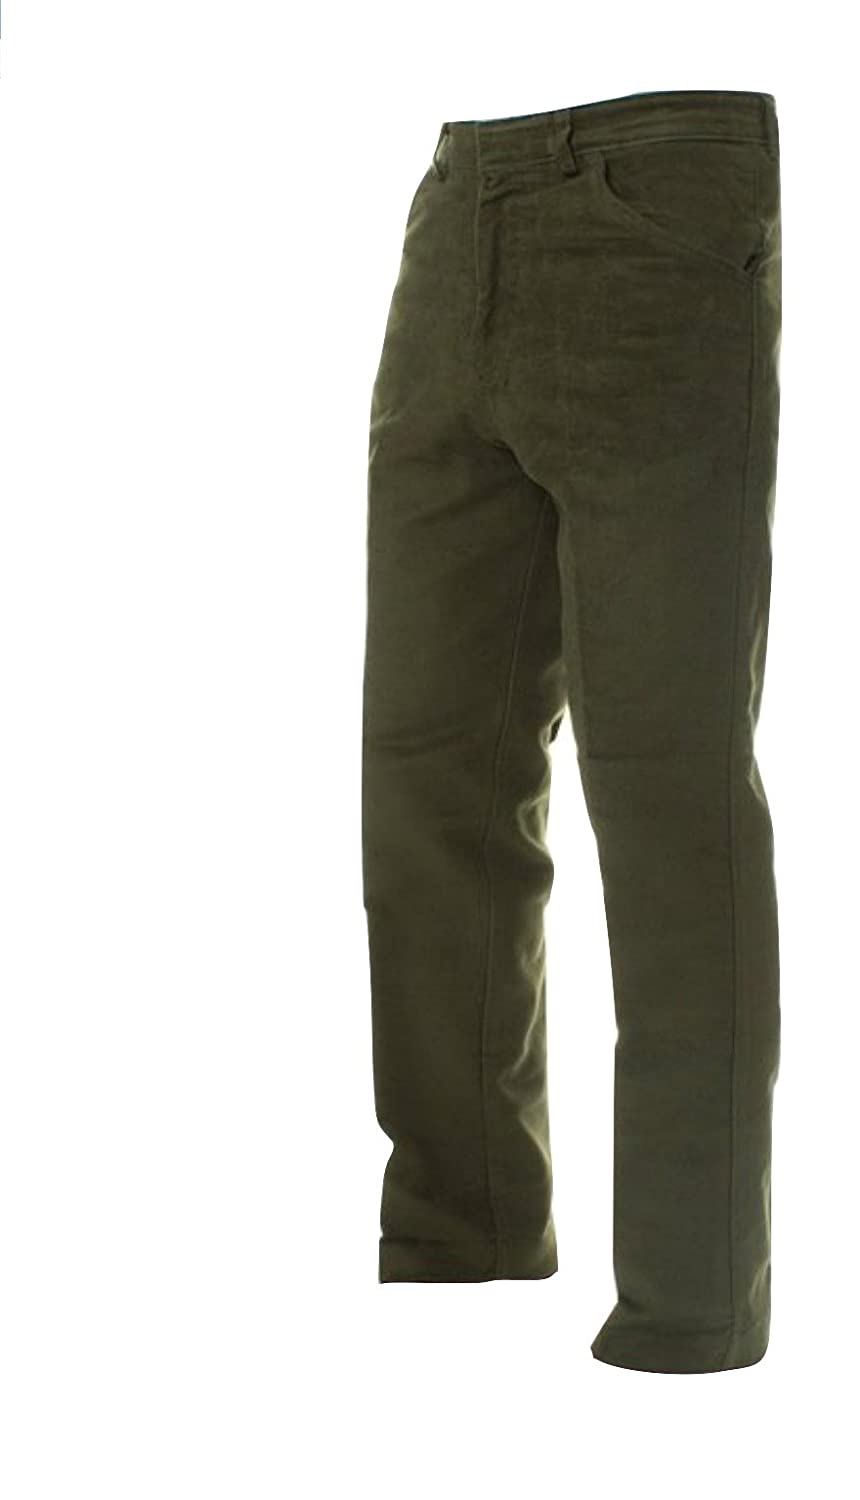 Carabou Mens Soft Feel Moleskin Windproof Outdoor Trousers Sizes 32 – 46 Country Wear Ideal for Outdoors Hunting Walking Shooting Fishing Olive Lovat Navy